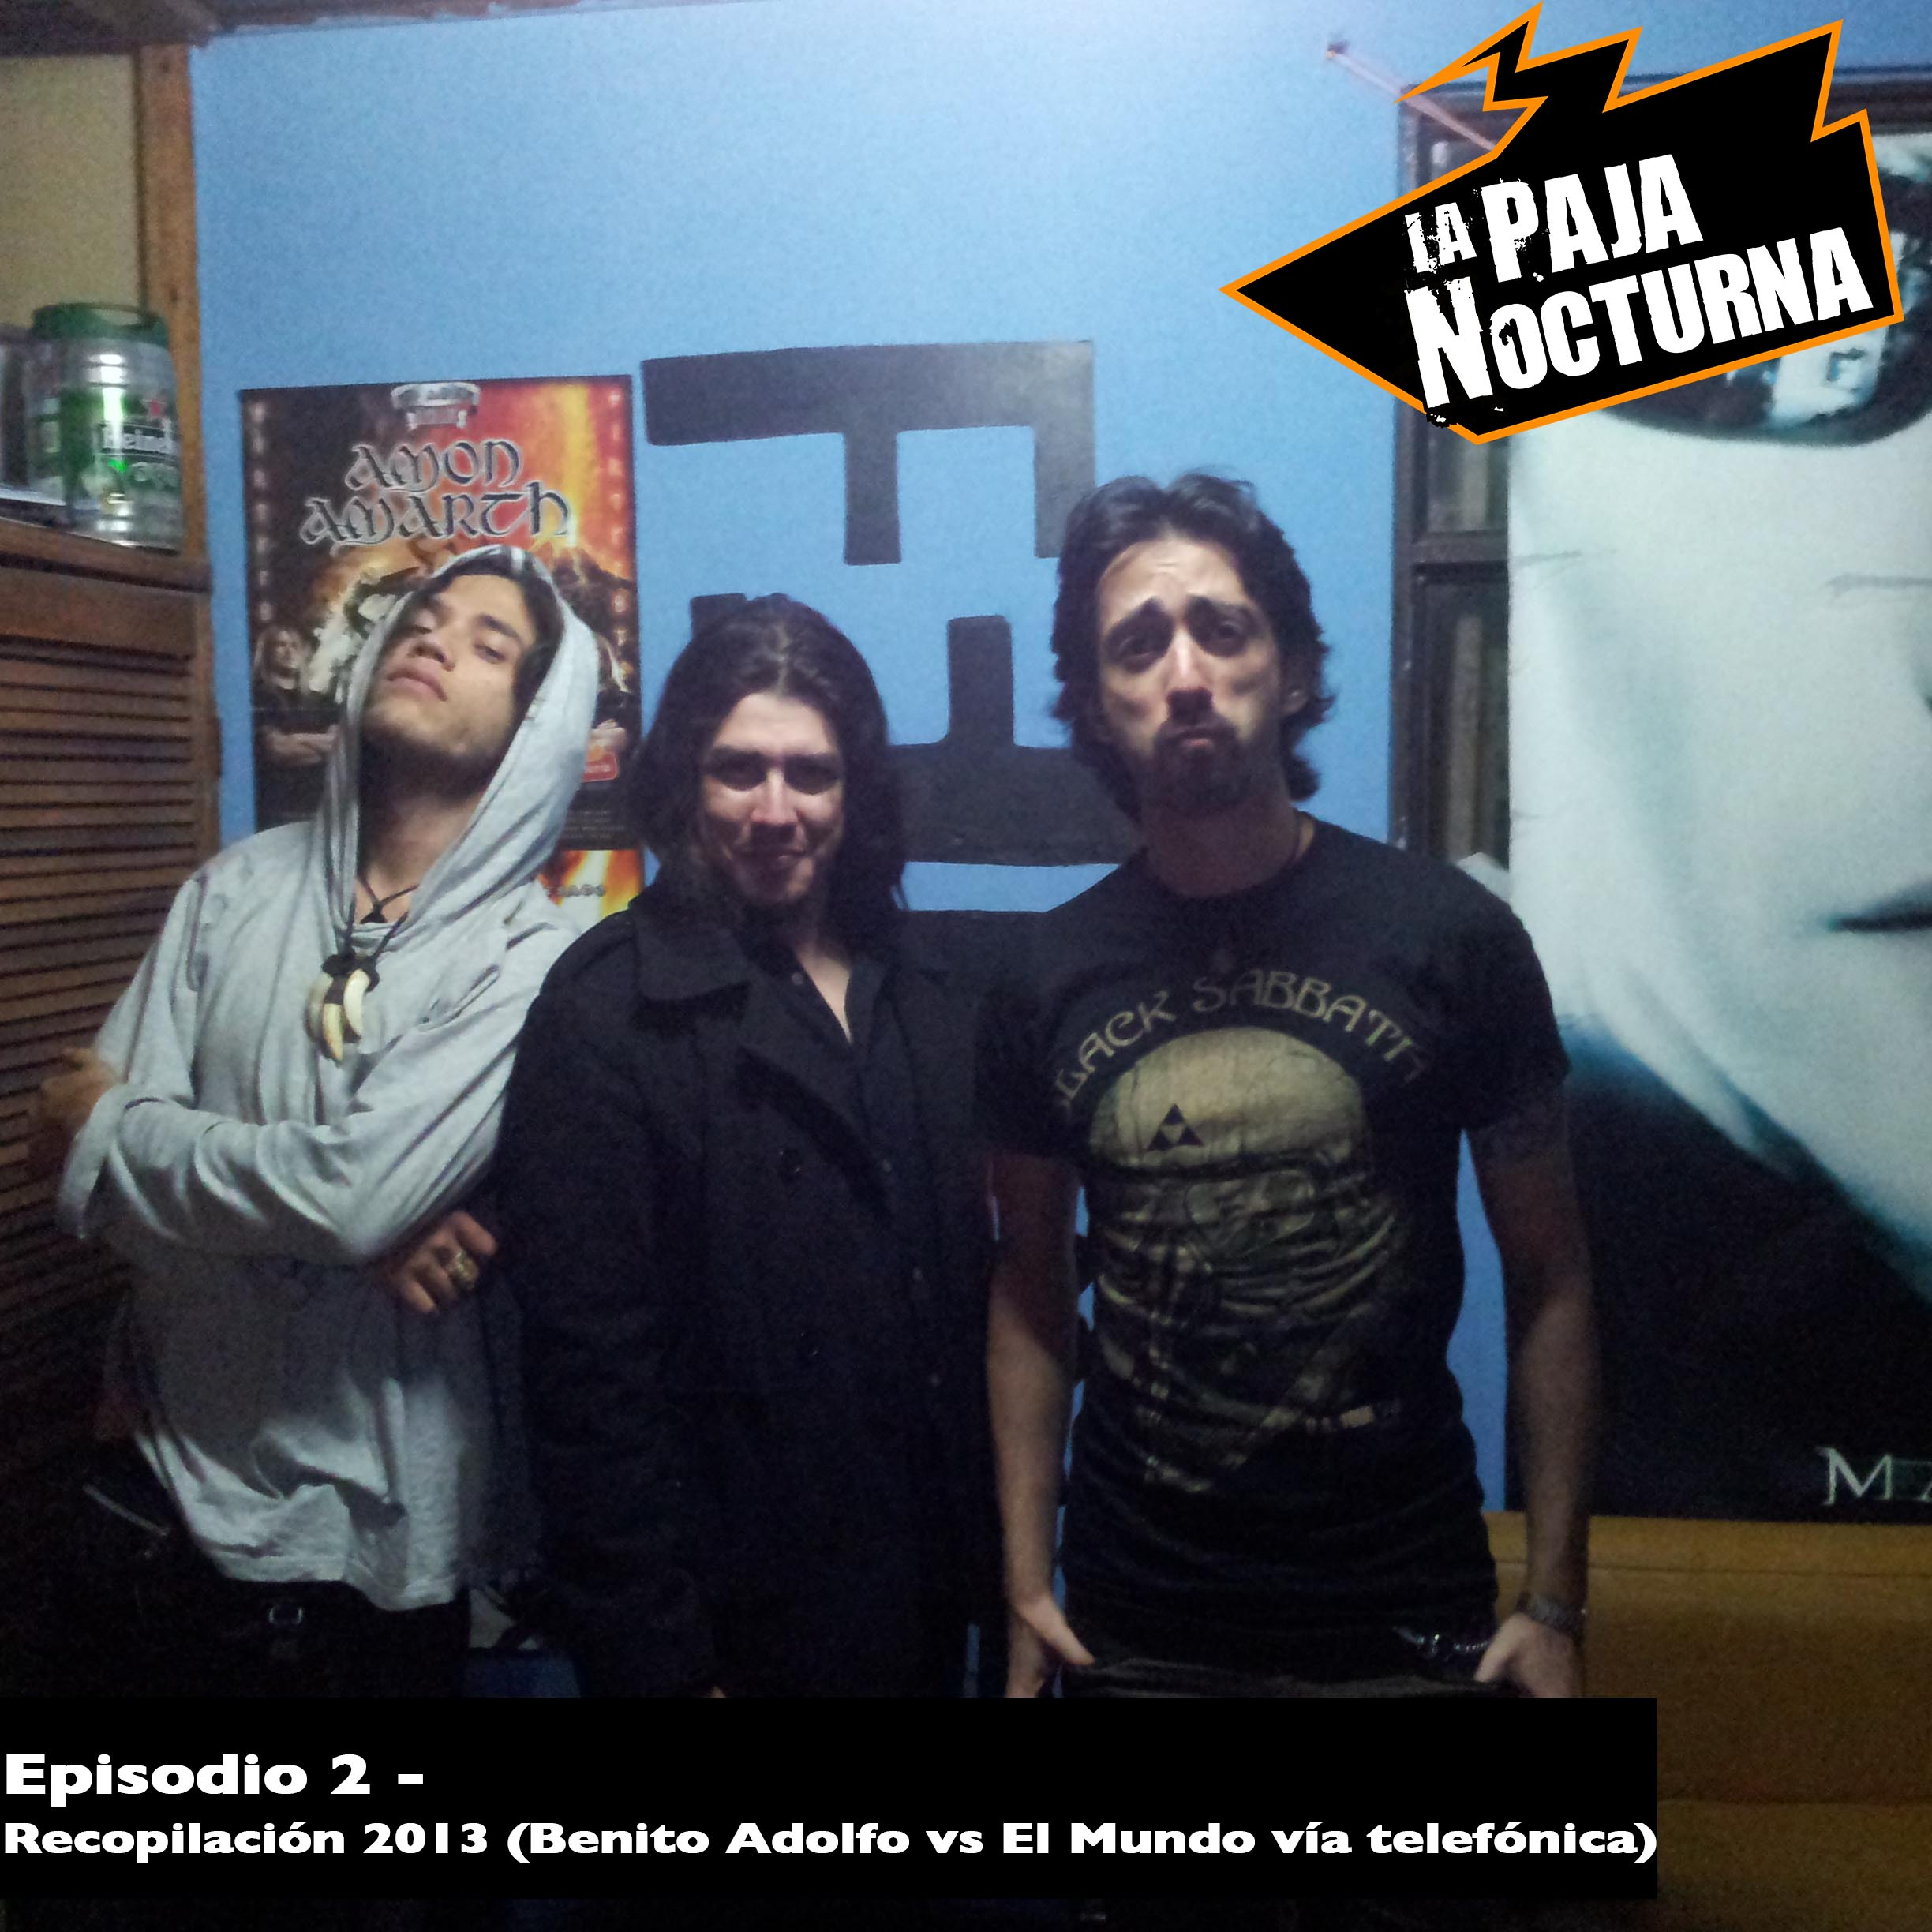 La Paja nocturna Podcast Episodio 2